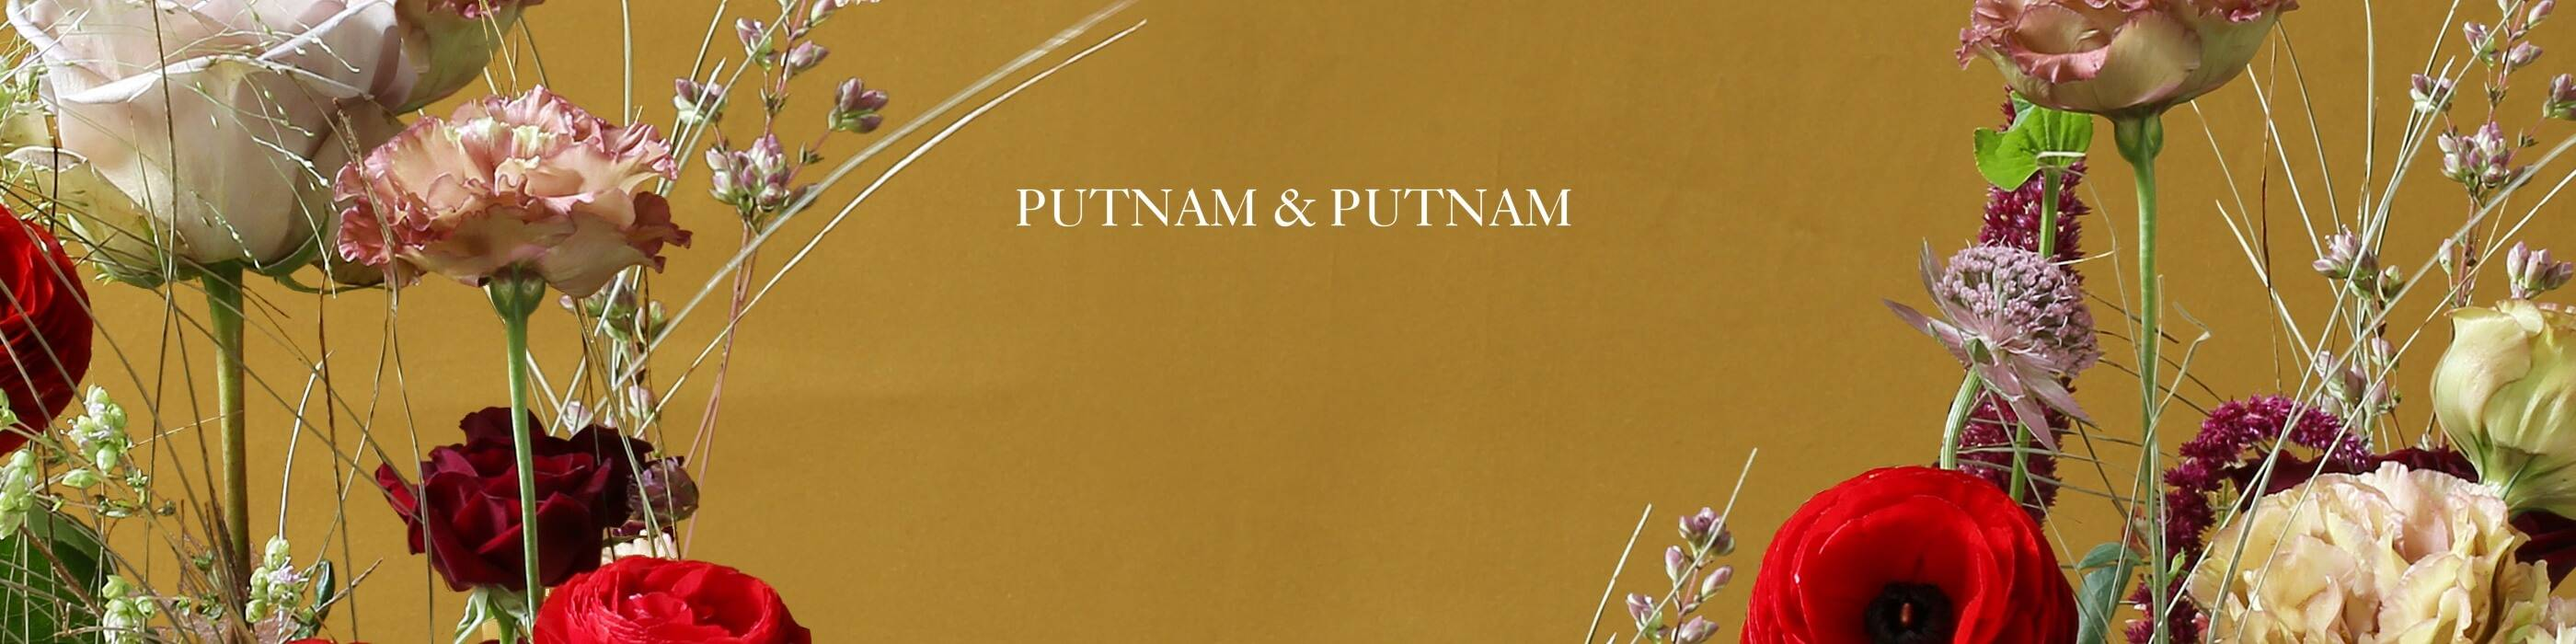 Putnam & Putnam for Paperless Post